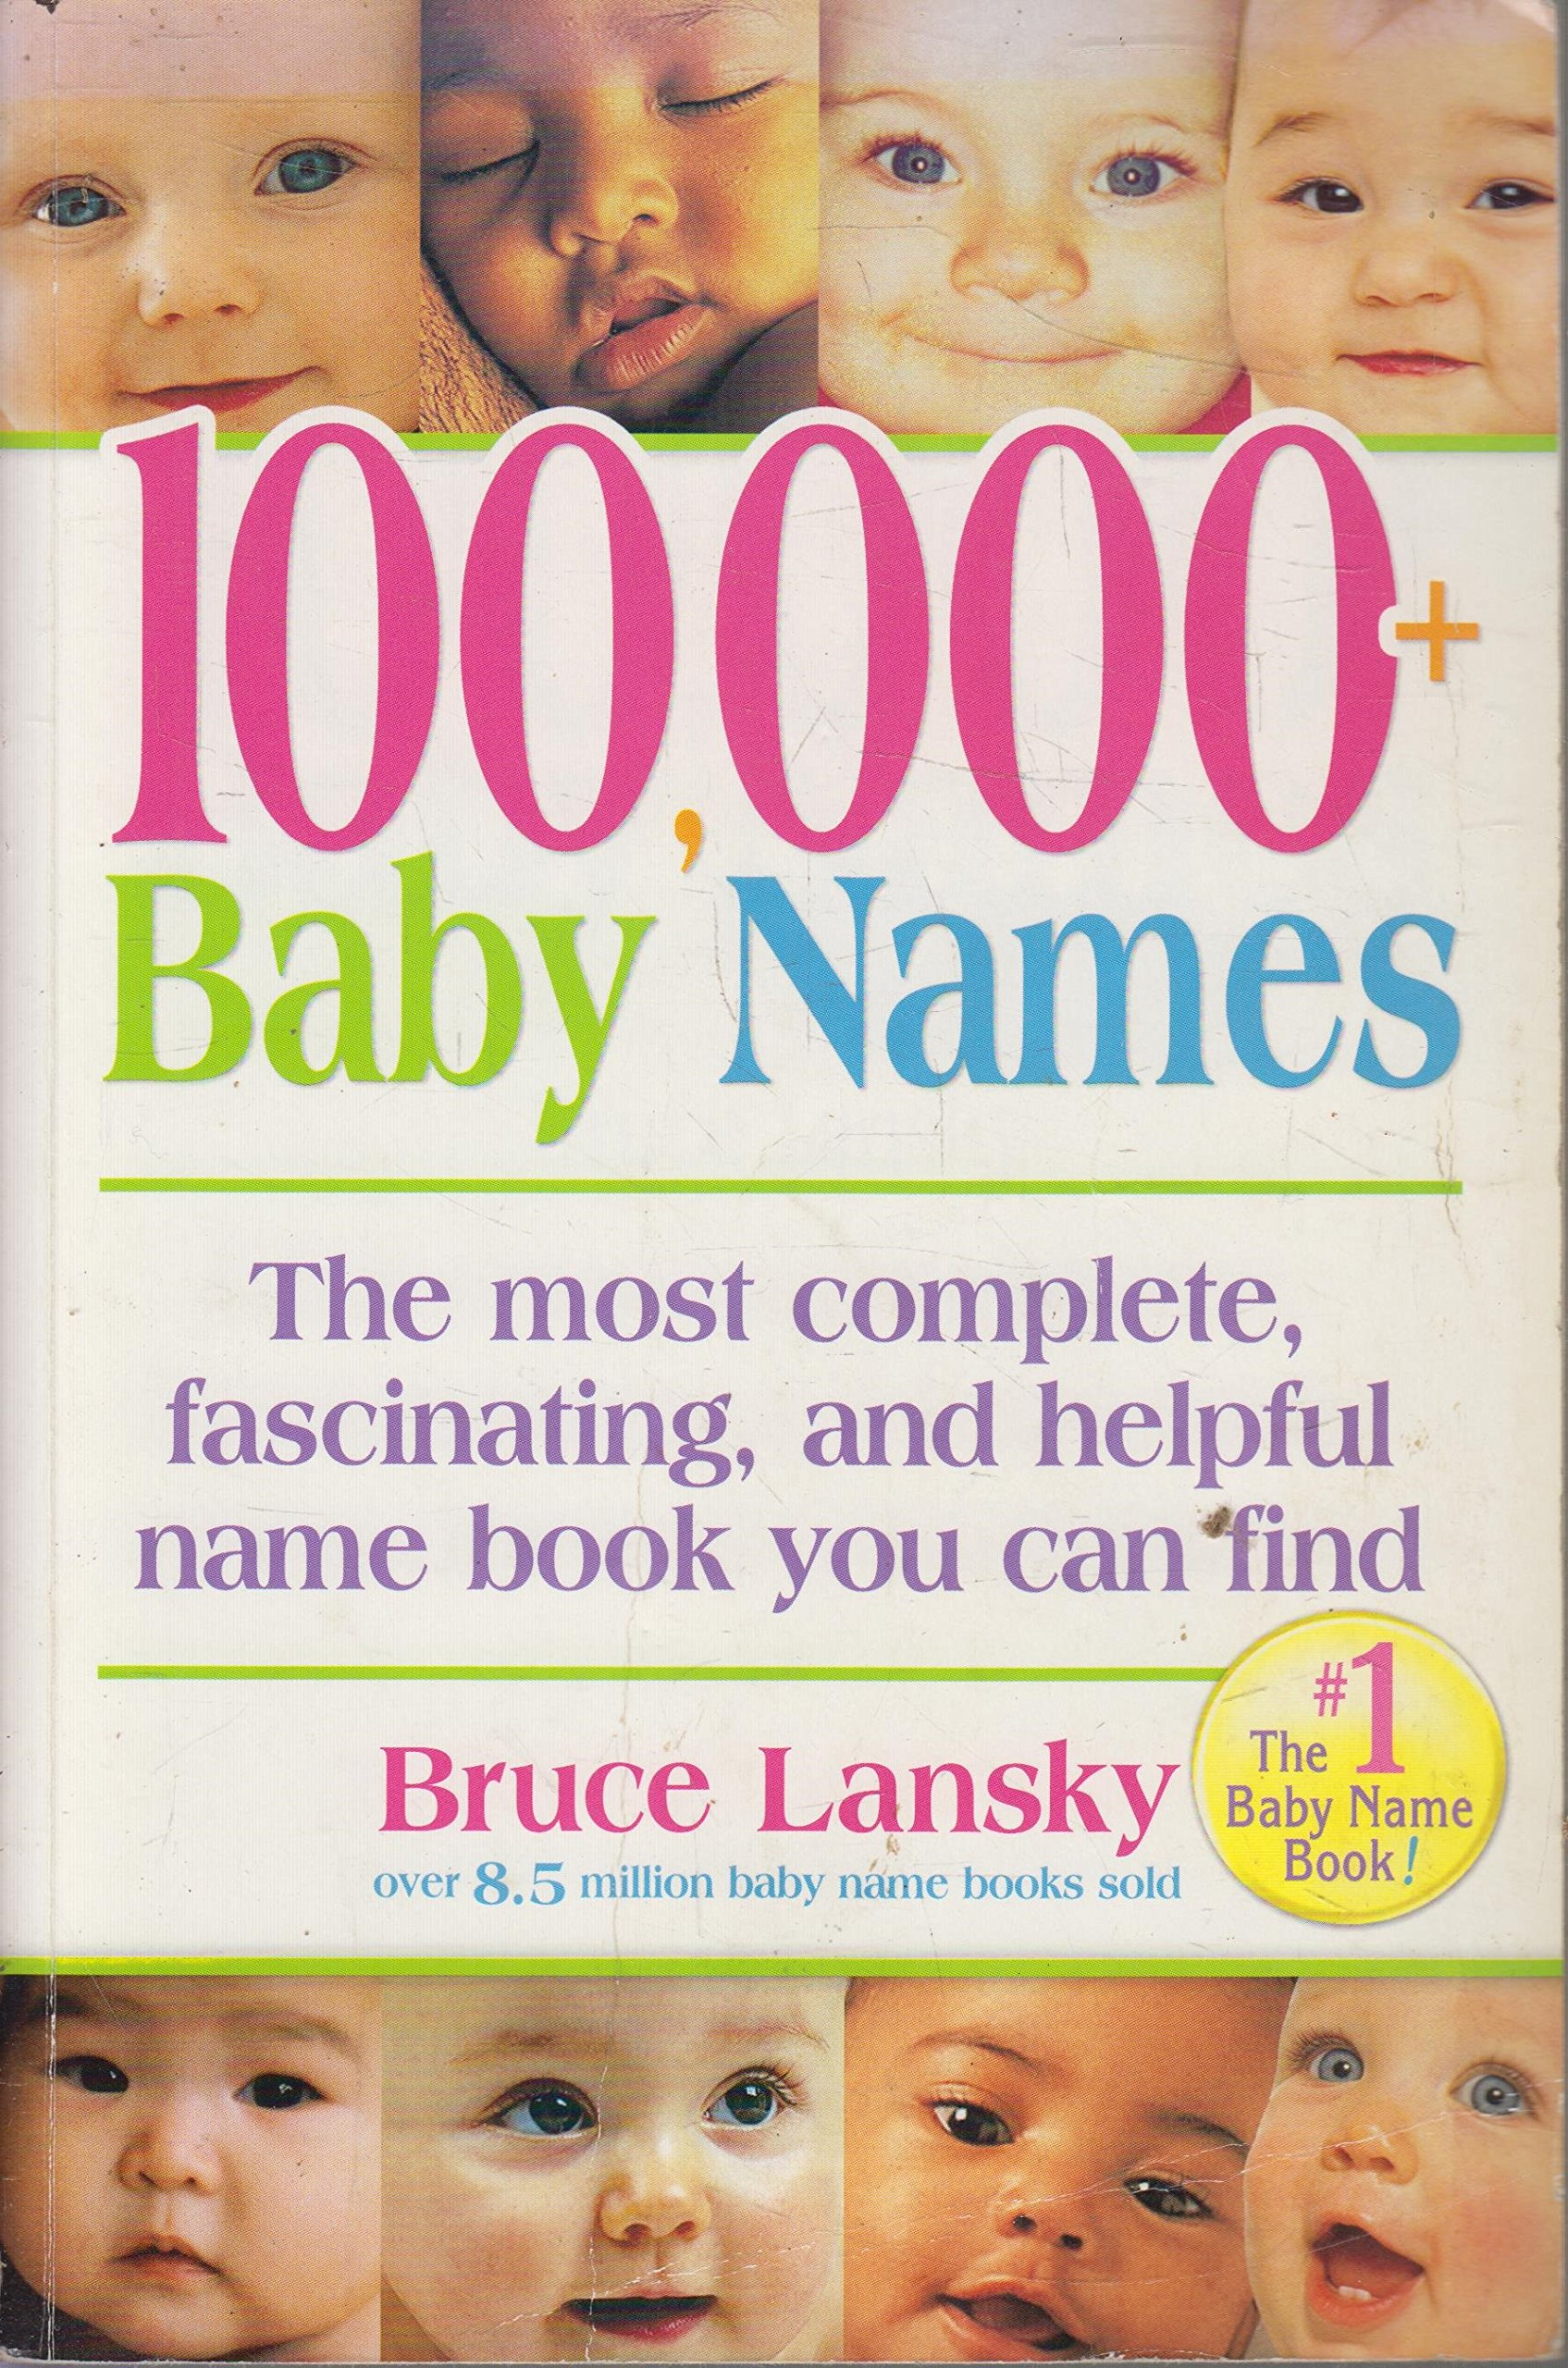 100, 000+ Baby Names: The Most Complete, Fascinating, and Helpful Name Book  You Can Find: Bruce Lansky: Amazon.com: Books